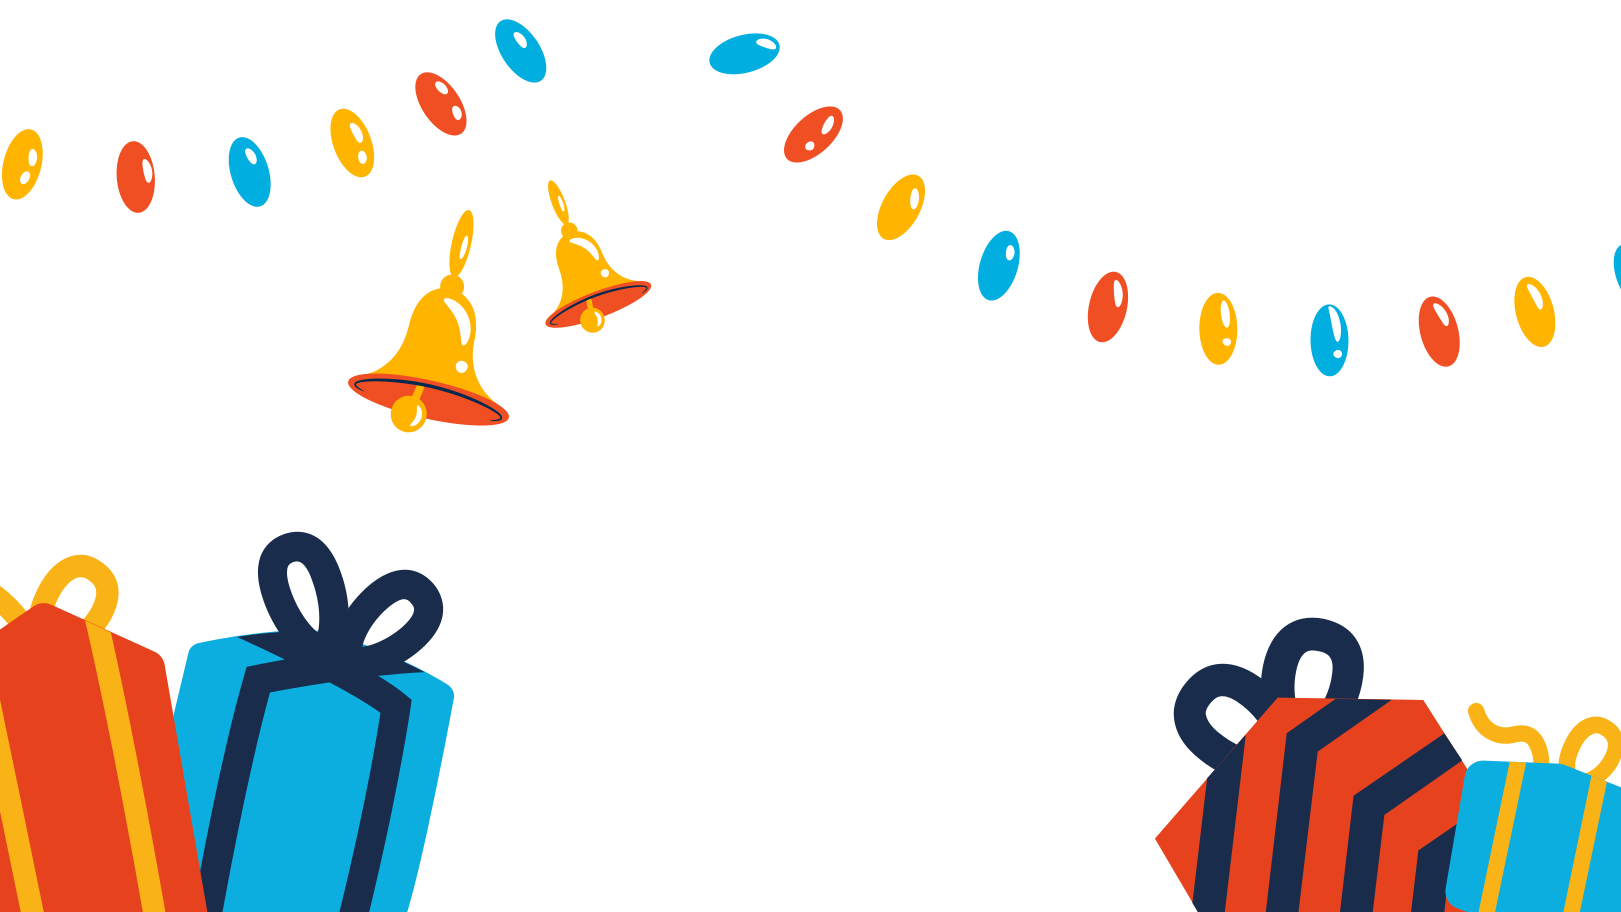 Christmas Gifts Clipart illustration in PNG, SVG